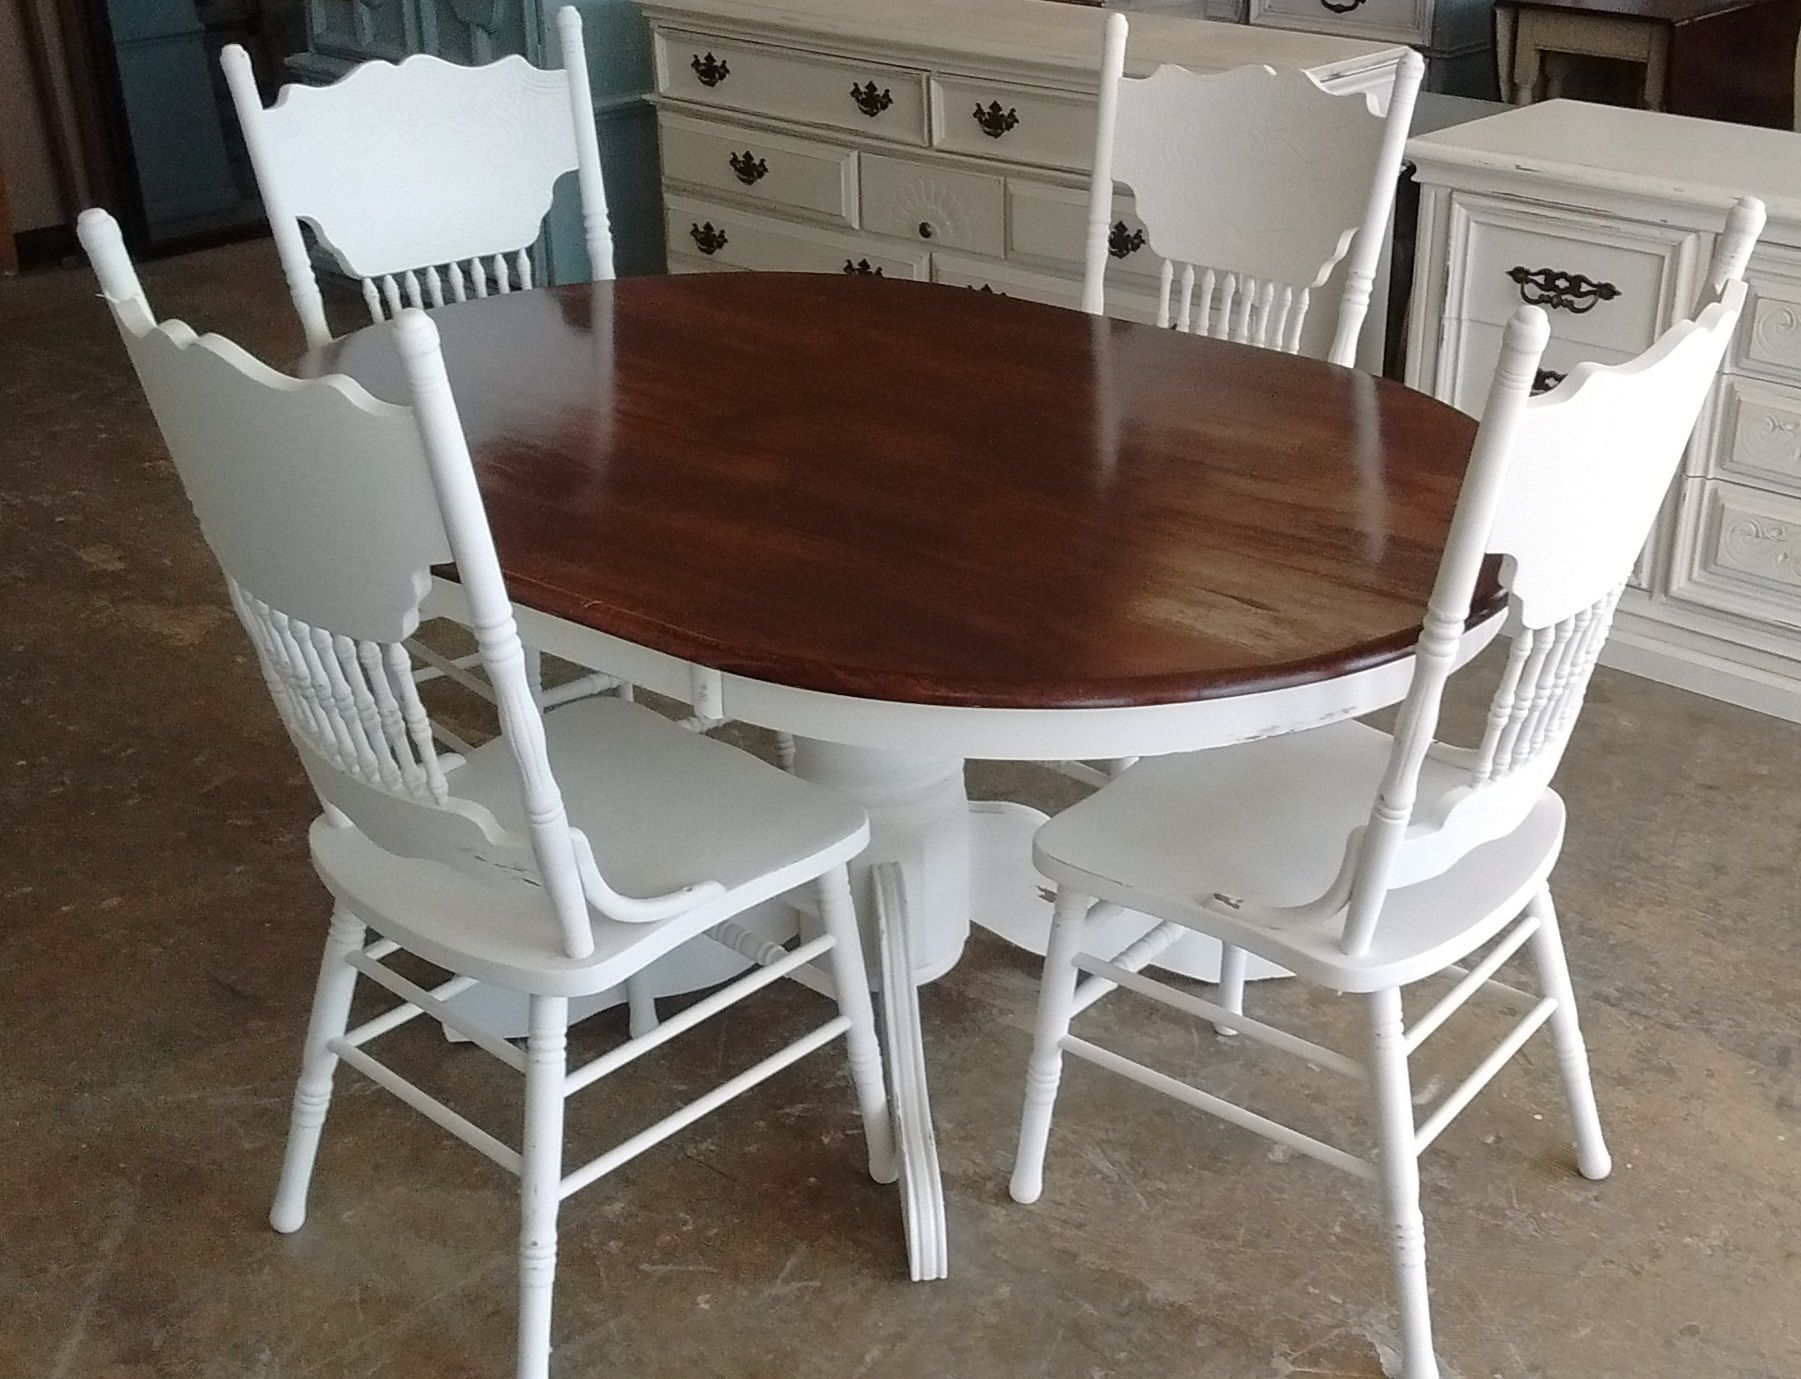 Here Is A Cute Little Table And Chair Set Perfect For That Apartment Or Breakfast Nook What Do You Think The Dimensions Are 60 L Ope French Country Furniture